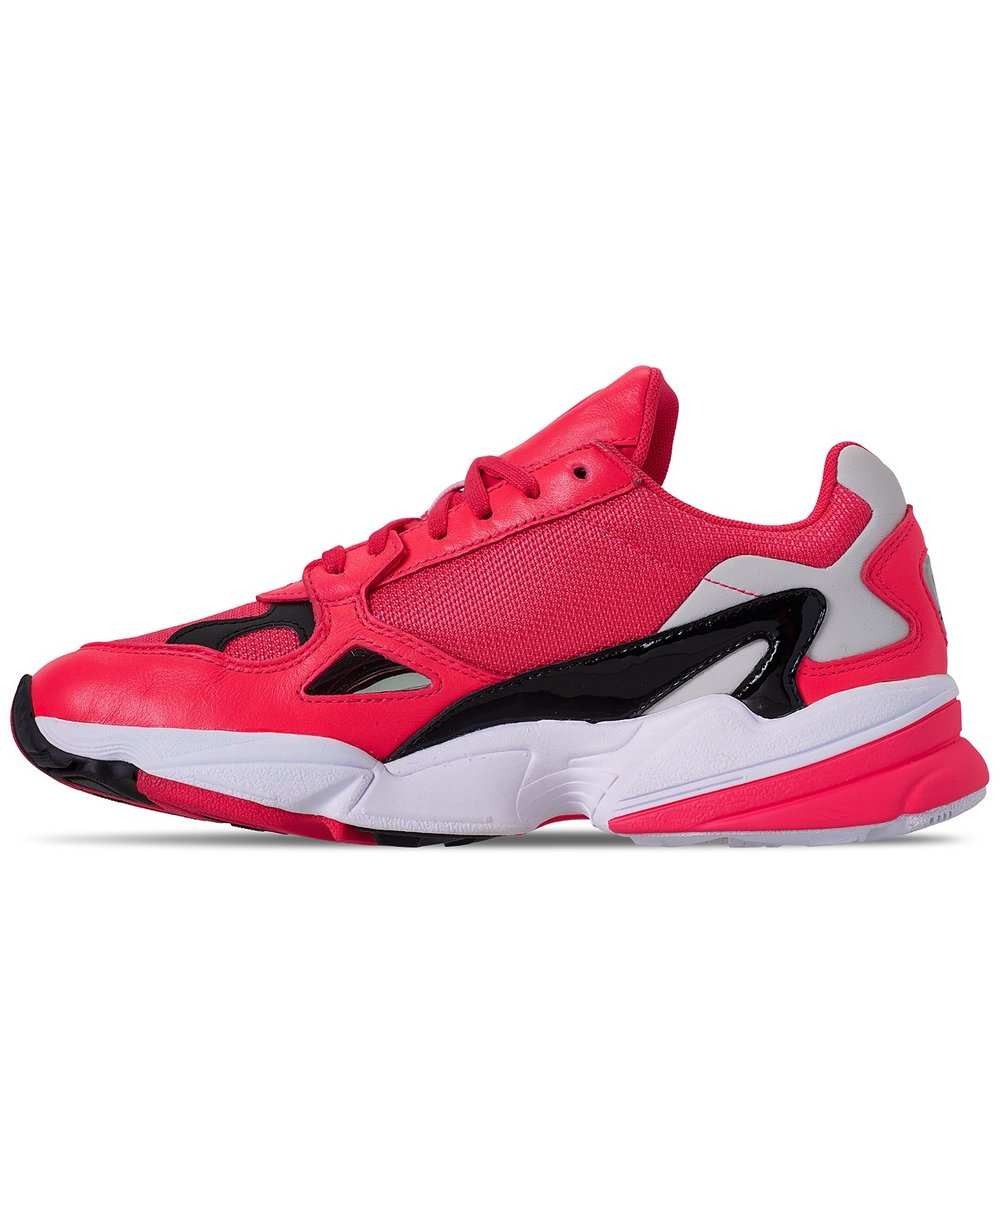 cnk-adidas-falcon-shock-red-3.jpg